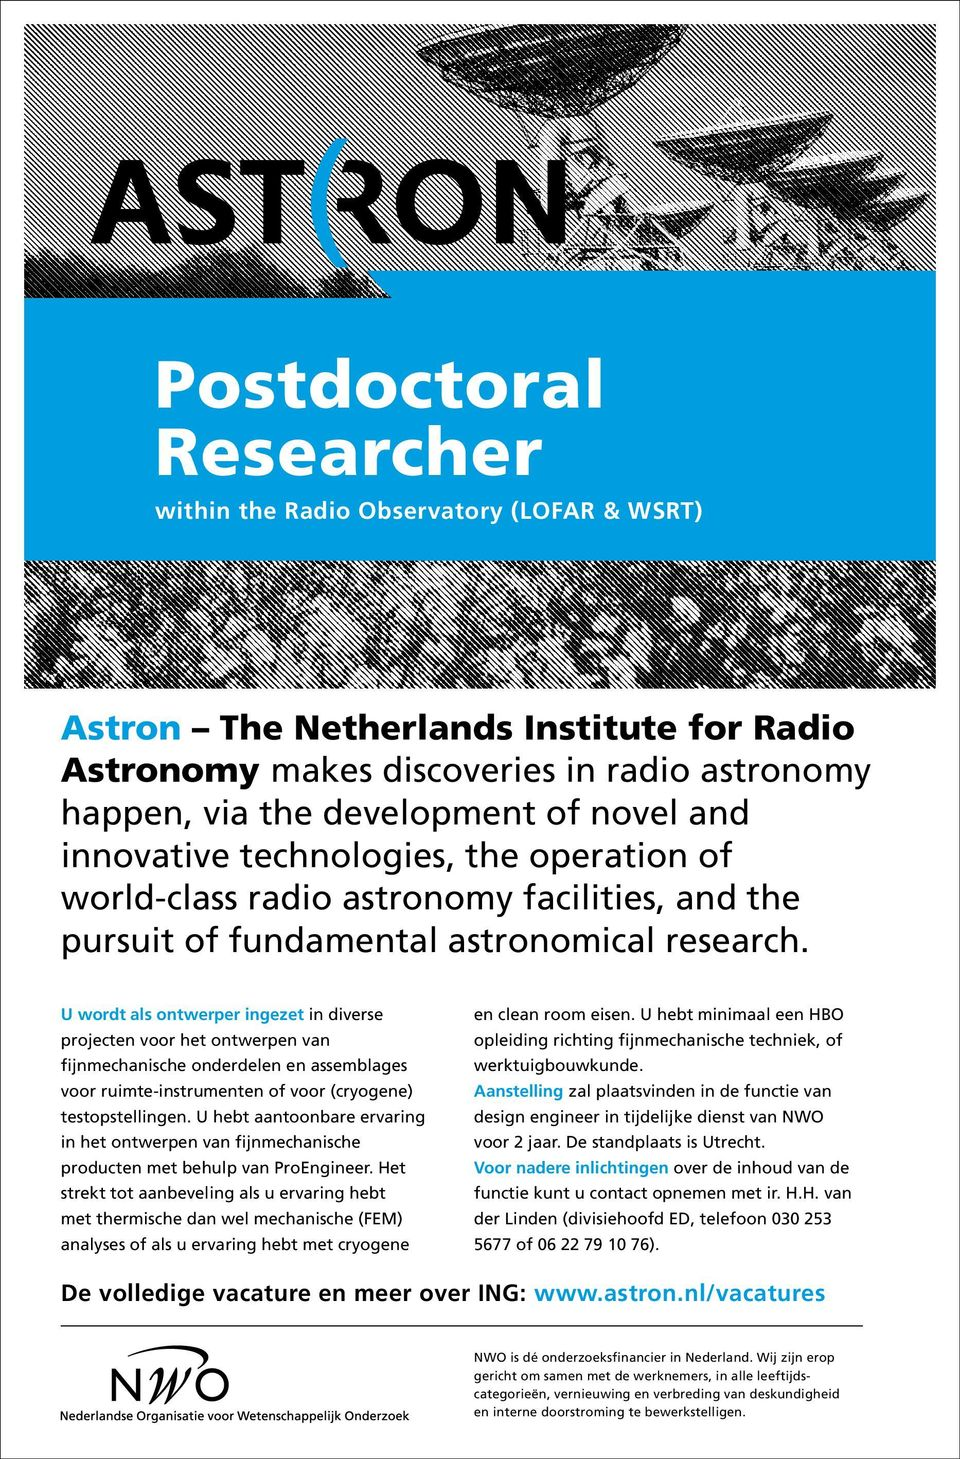 novel and innovative technologies, the operation of world-class radio astronomy facilities, and the